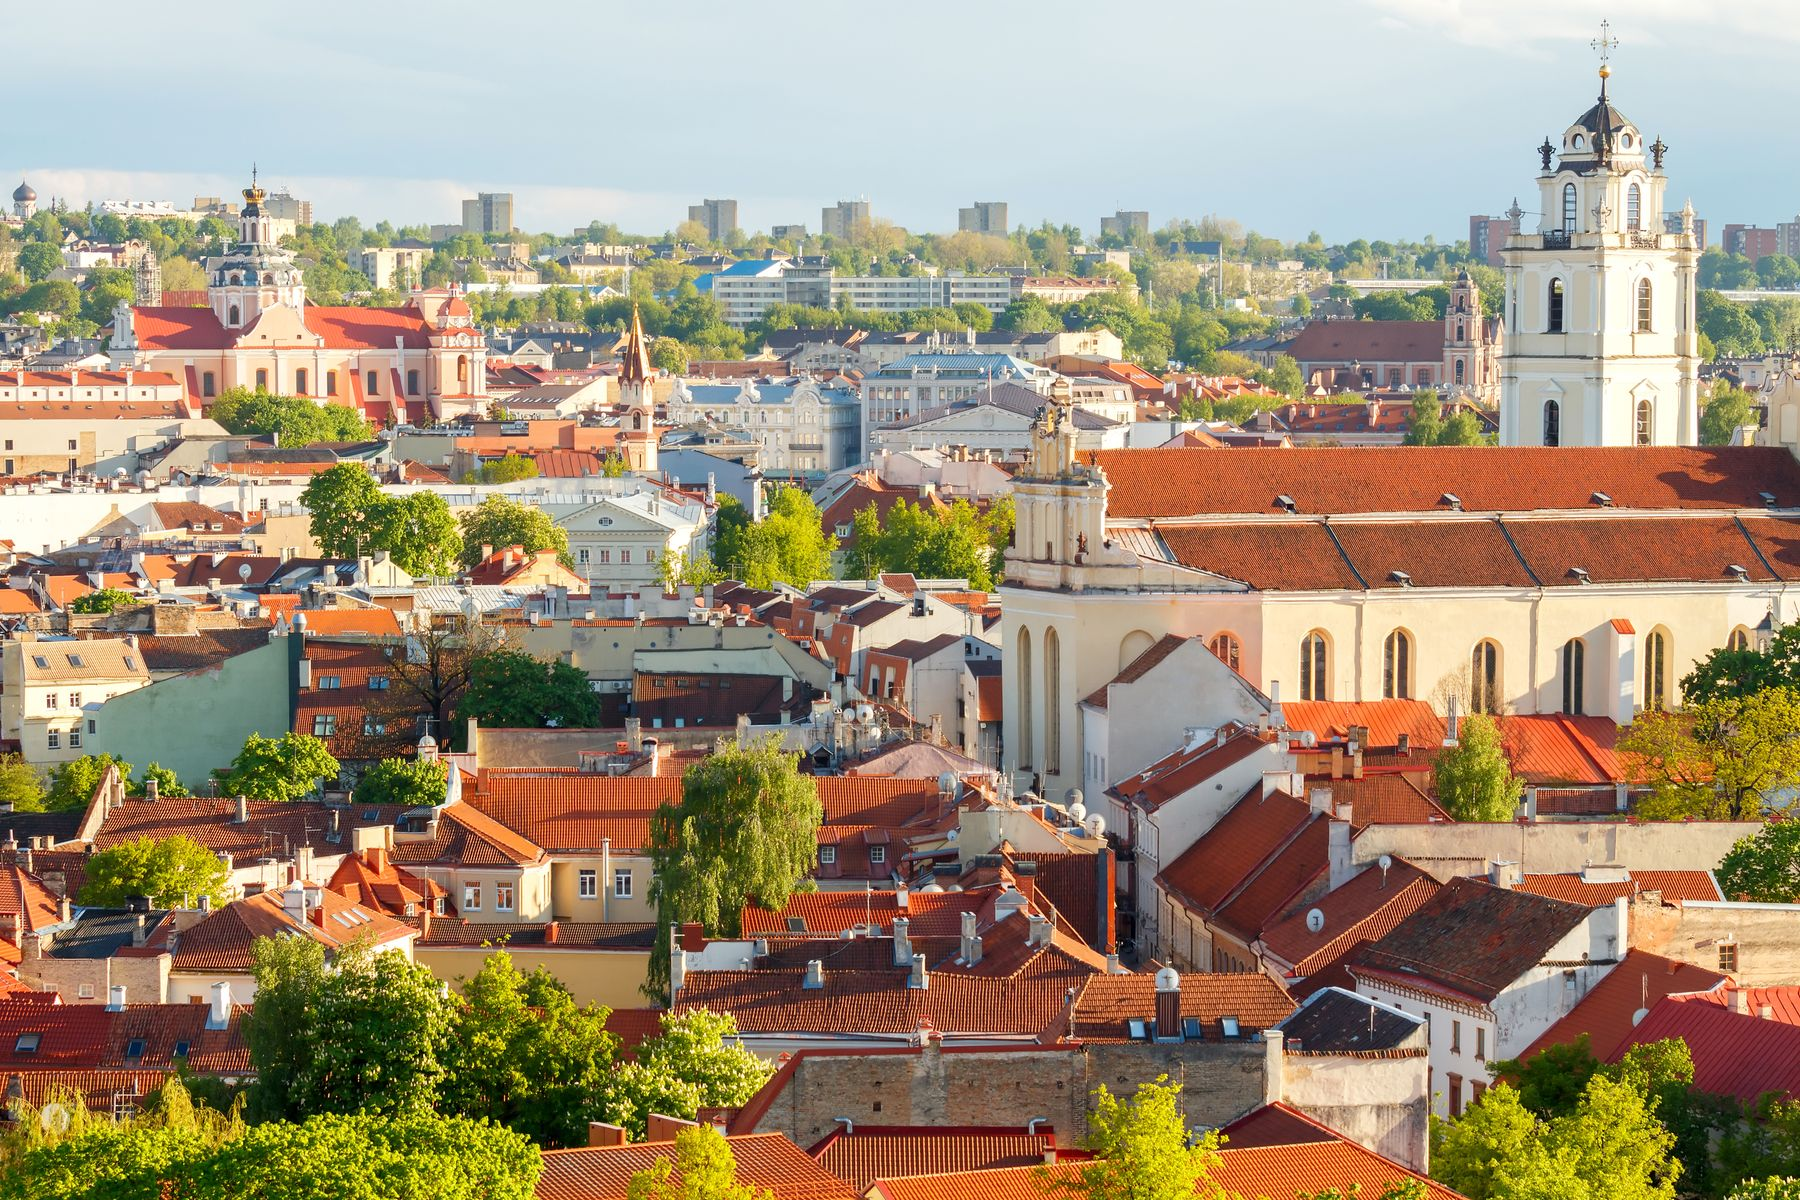 View of old town Vilnius in Lithuania in summer